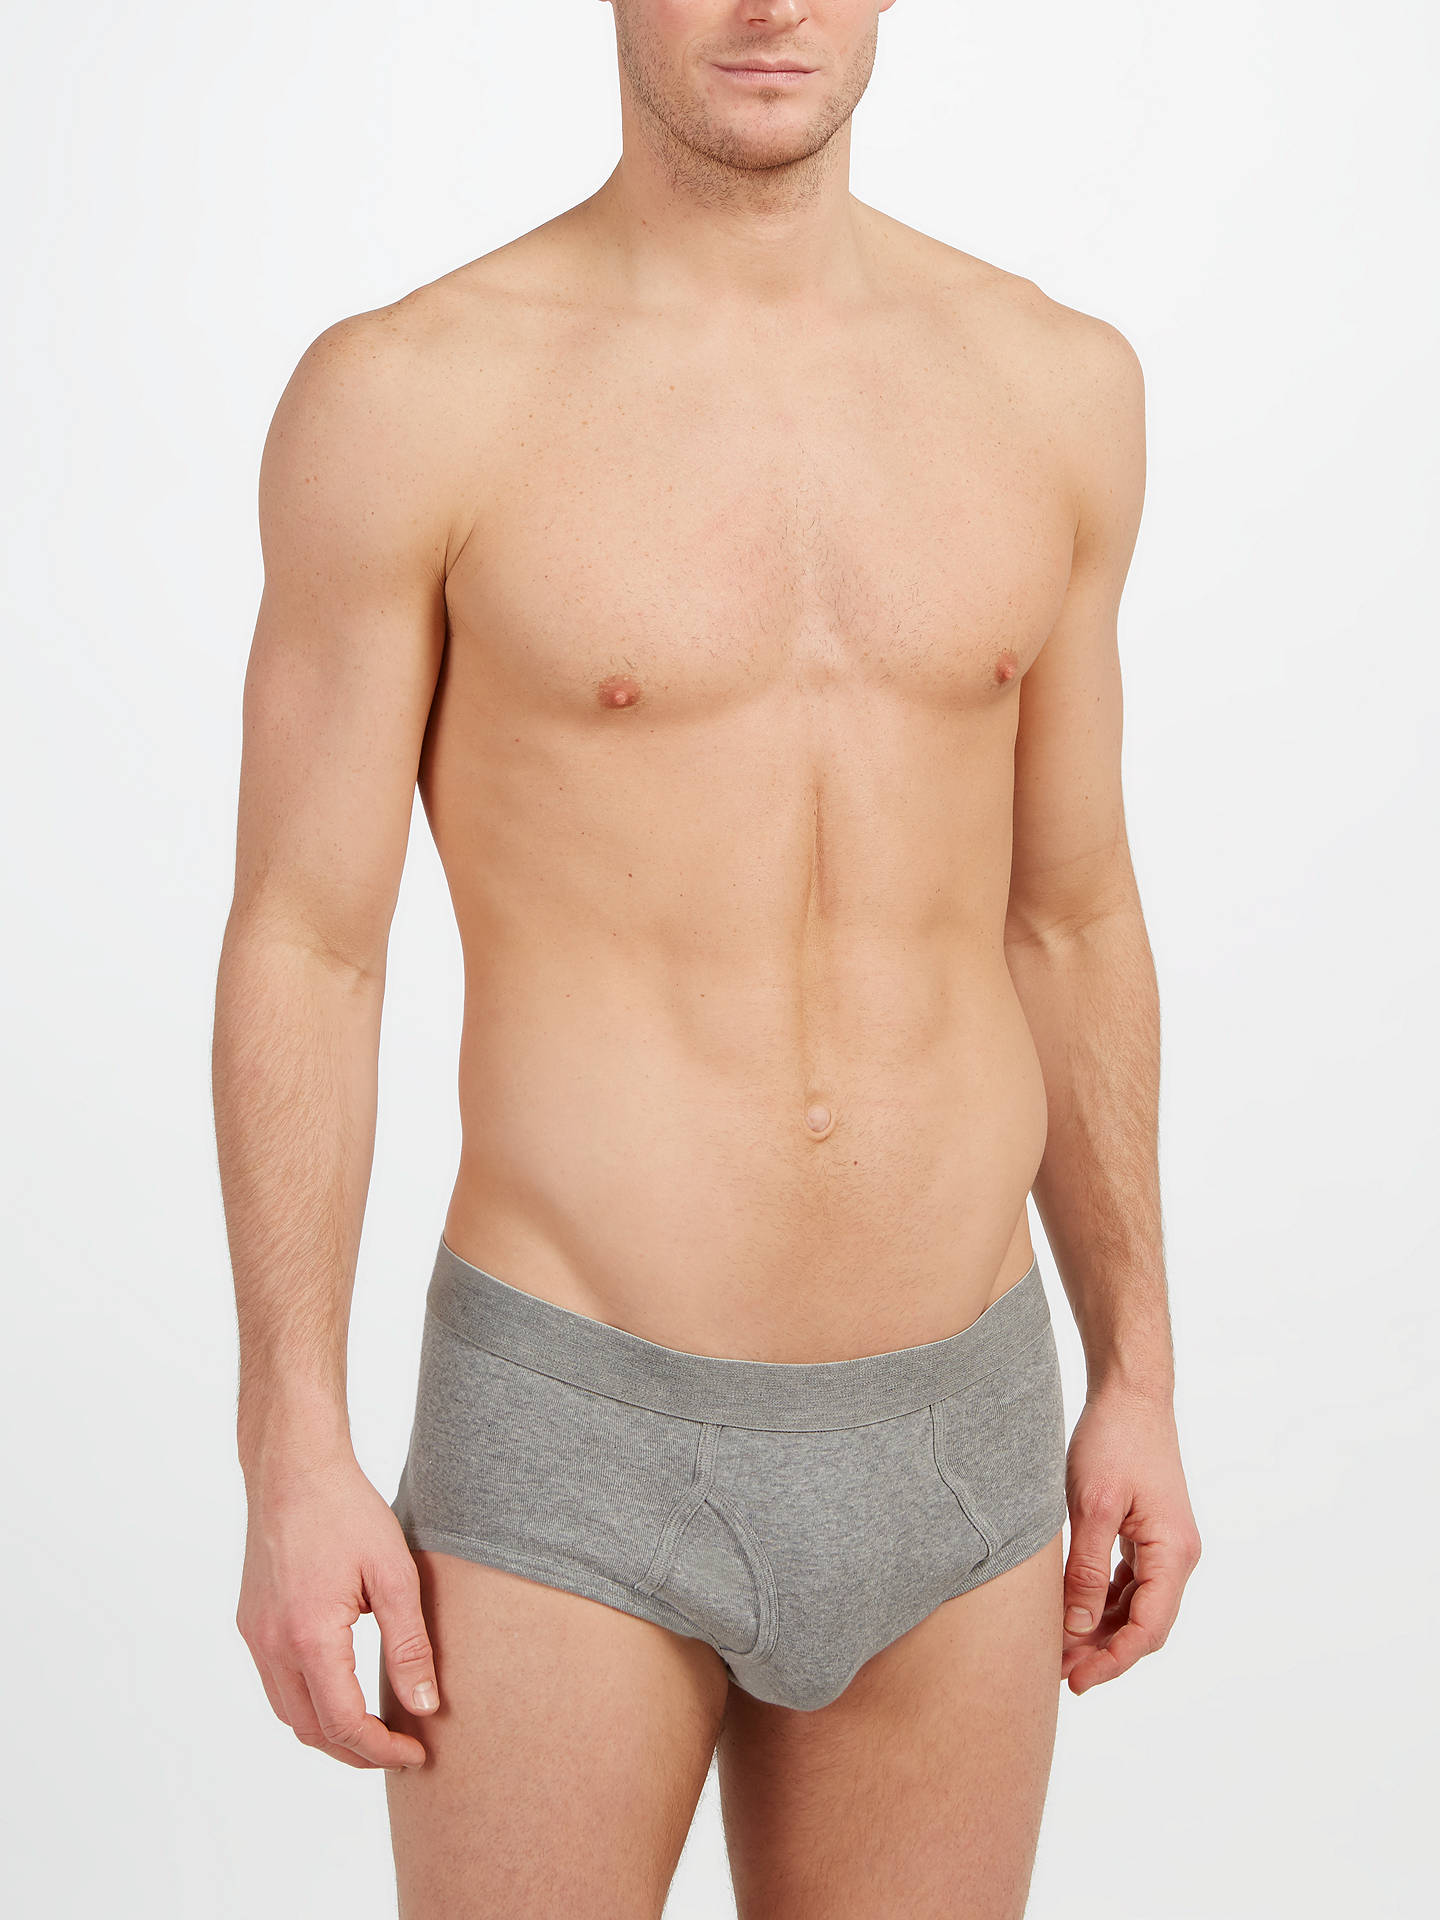 BuyJohn Lewis & Partners Organic Cotton Briefs, Pack of 4, Black/Grey, S Online at johnlewis.com